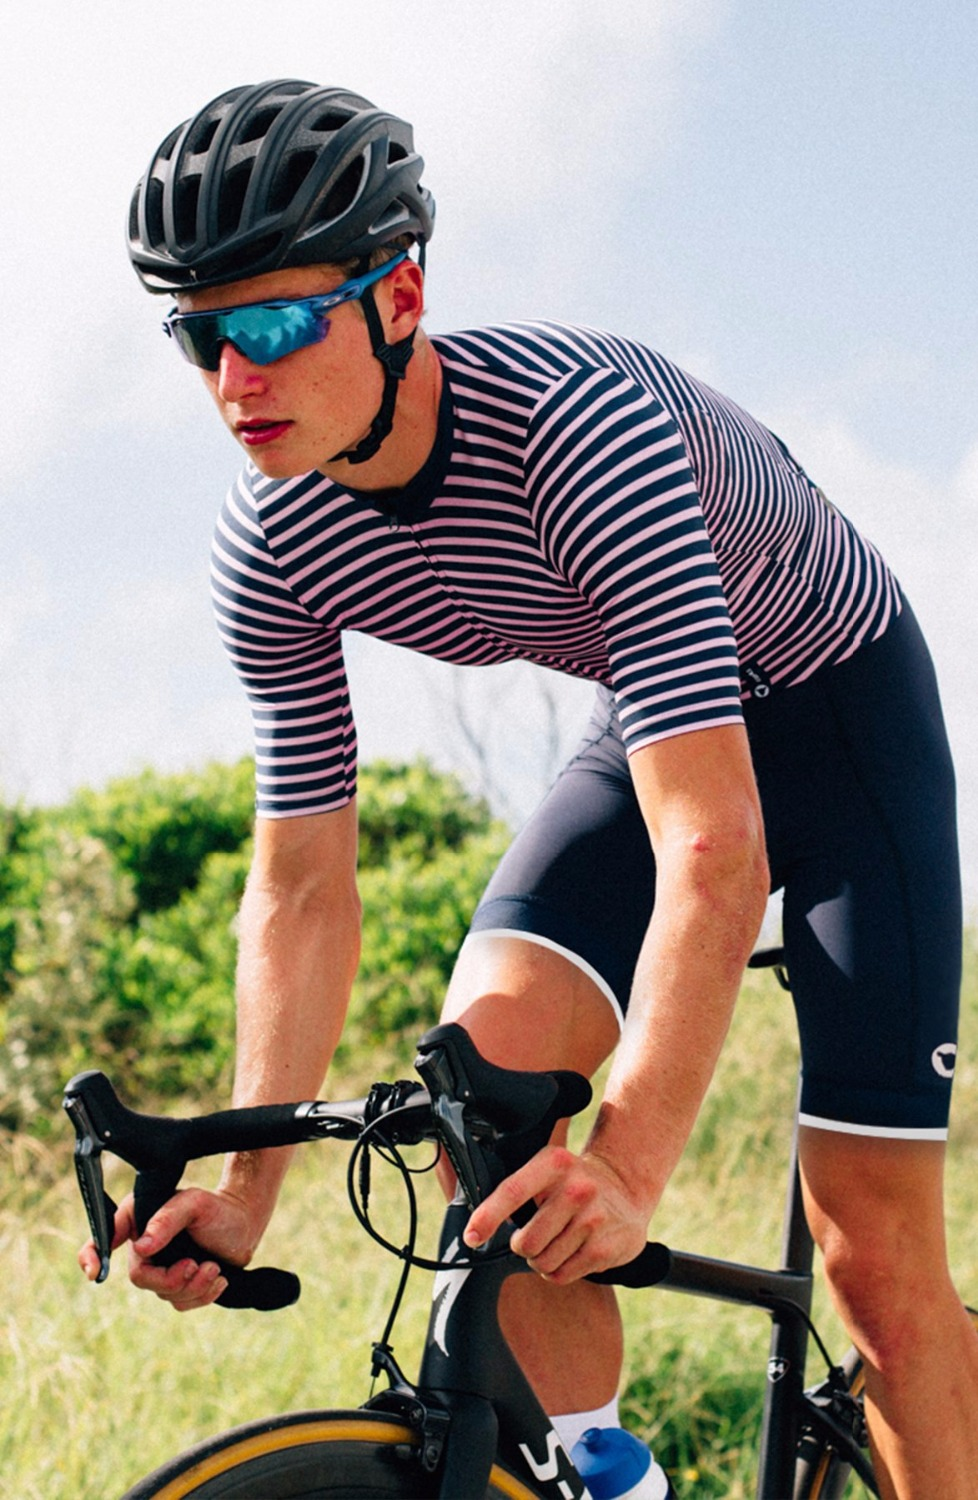 2018 Top quality pro team black sheep Collection Men s Stripes cycling  jersey Tight fit Summer mtb bike shirt tops sportswear-in Cycling Jerseys  from Sports ... 44fbe469c